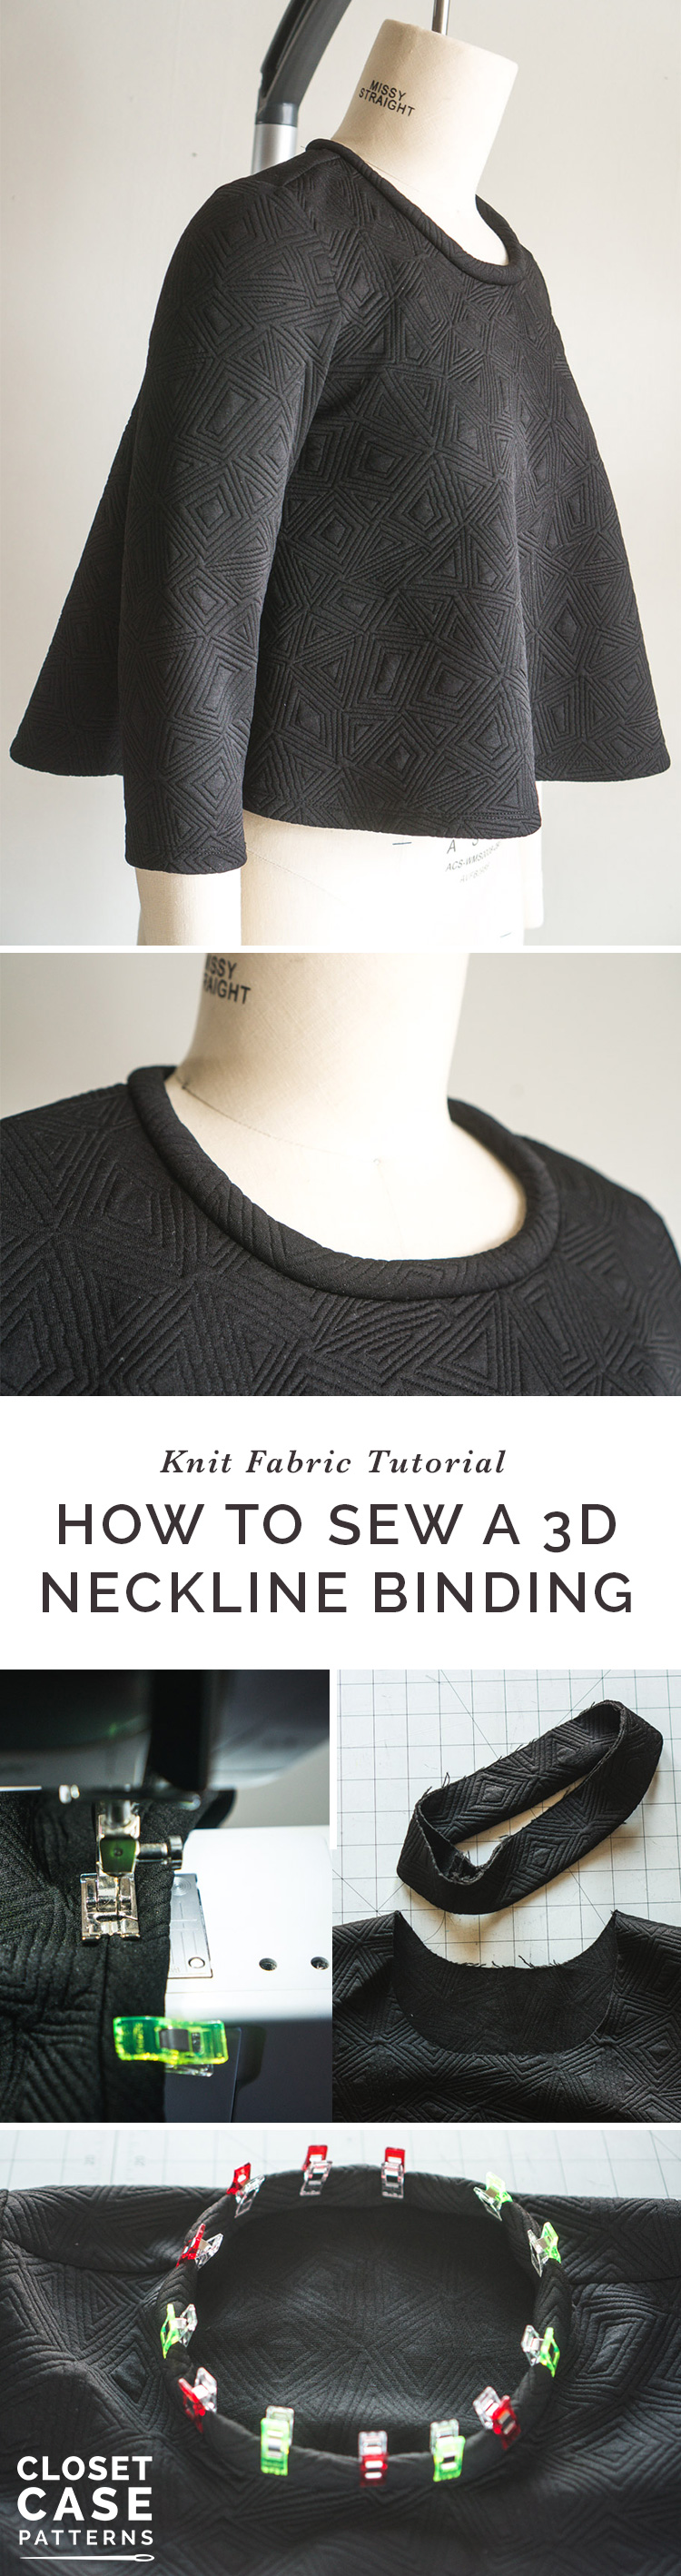 A cool technique for making a 3D neck binding for knit fabrics by Closet Case Patterns